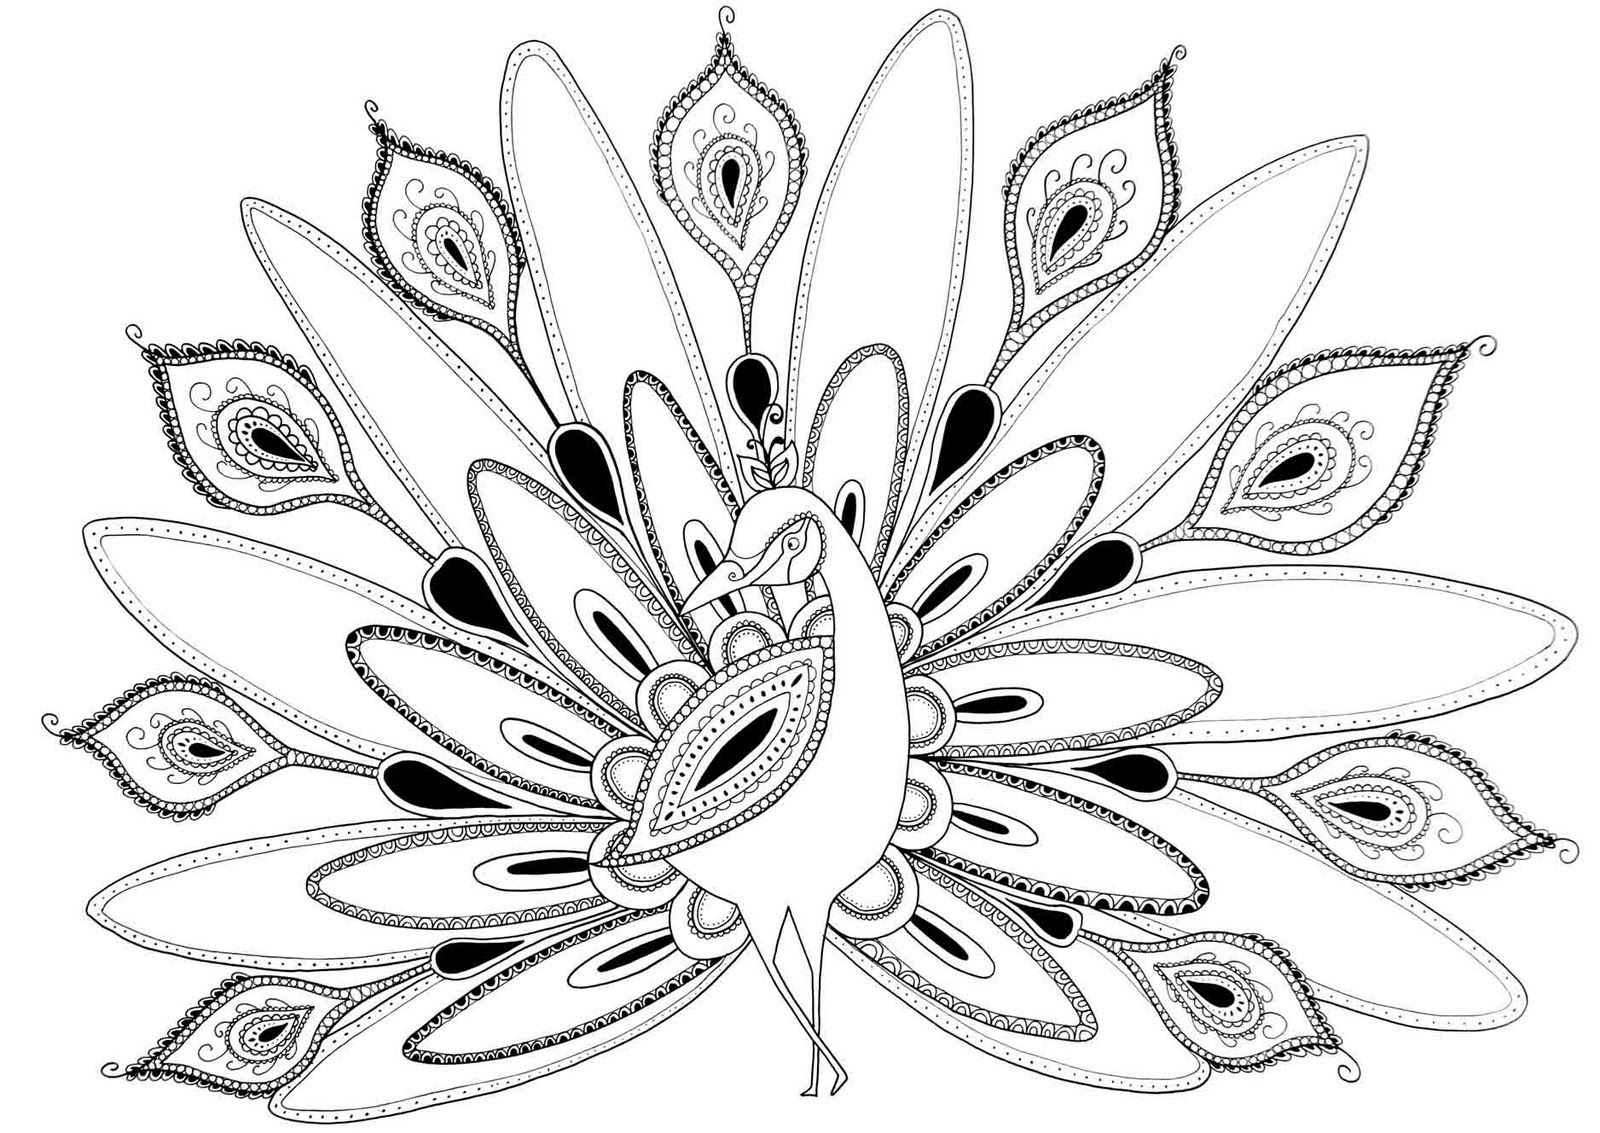 easy cute peacock coloring pages peacock coloring pages to download and print for free peacock pages coloring easy cute